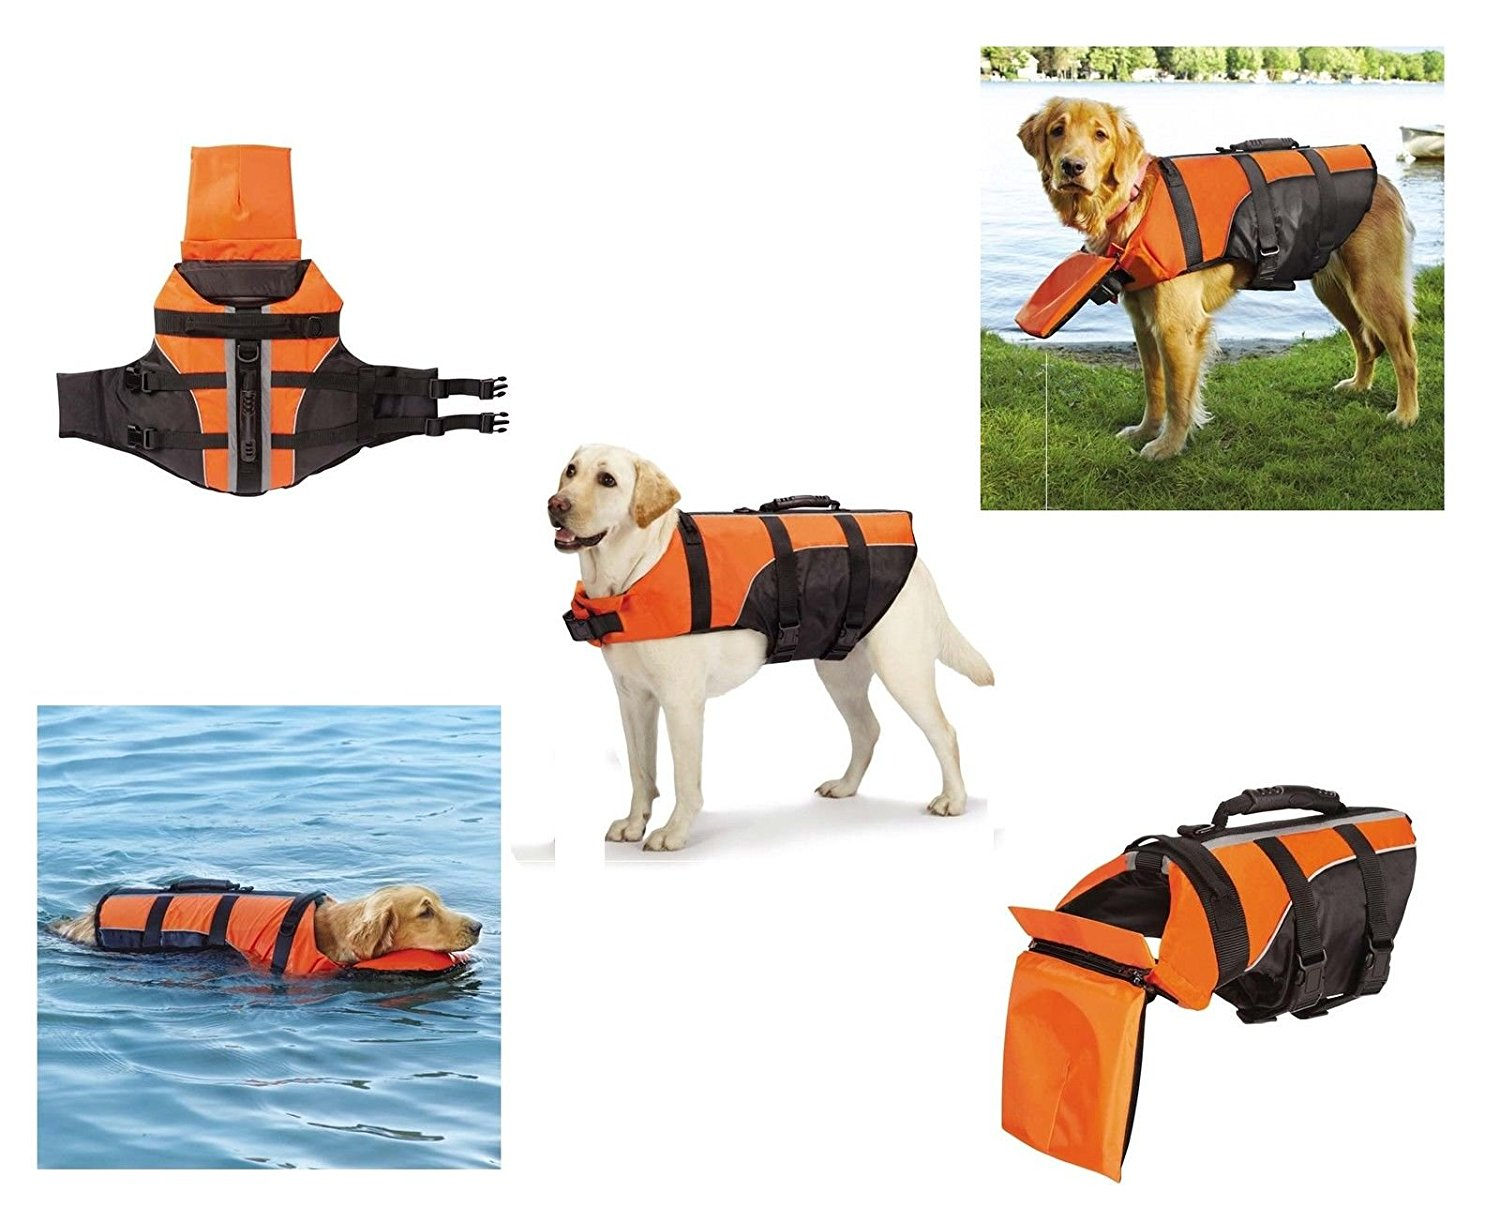 Deluxe Detachable Pillow Vest for Dogs - Water Safety Dog Flotation Life Vests(Small/Medium)